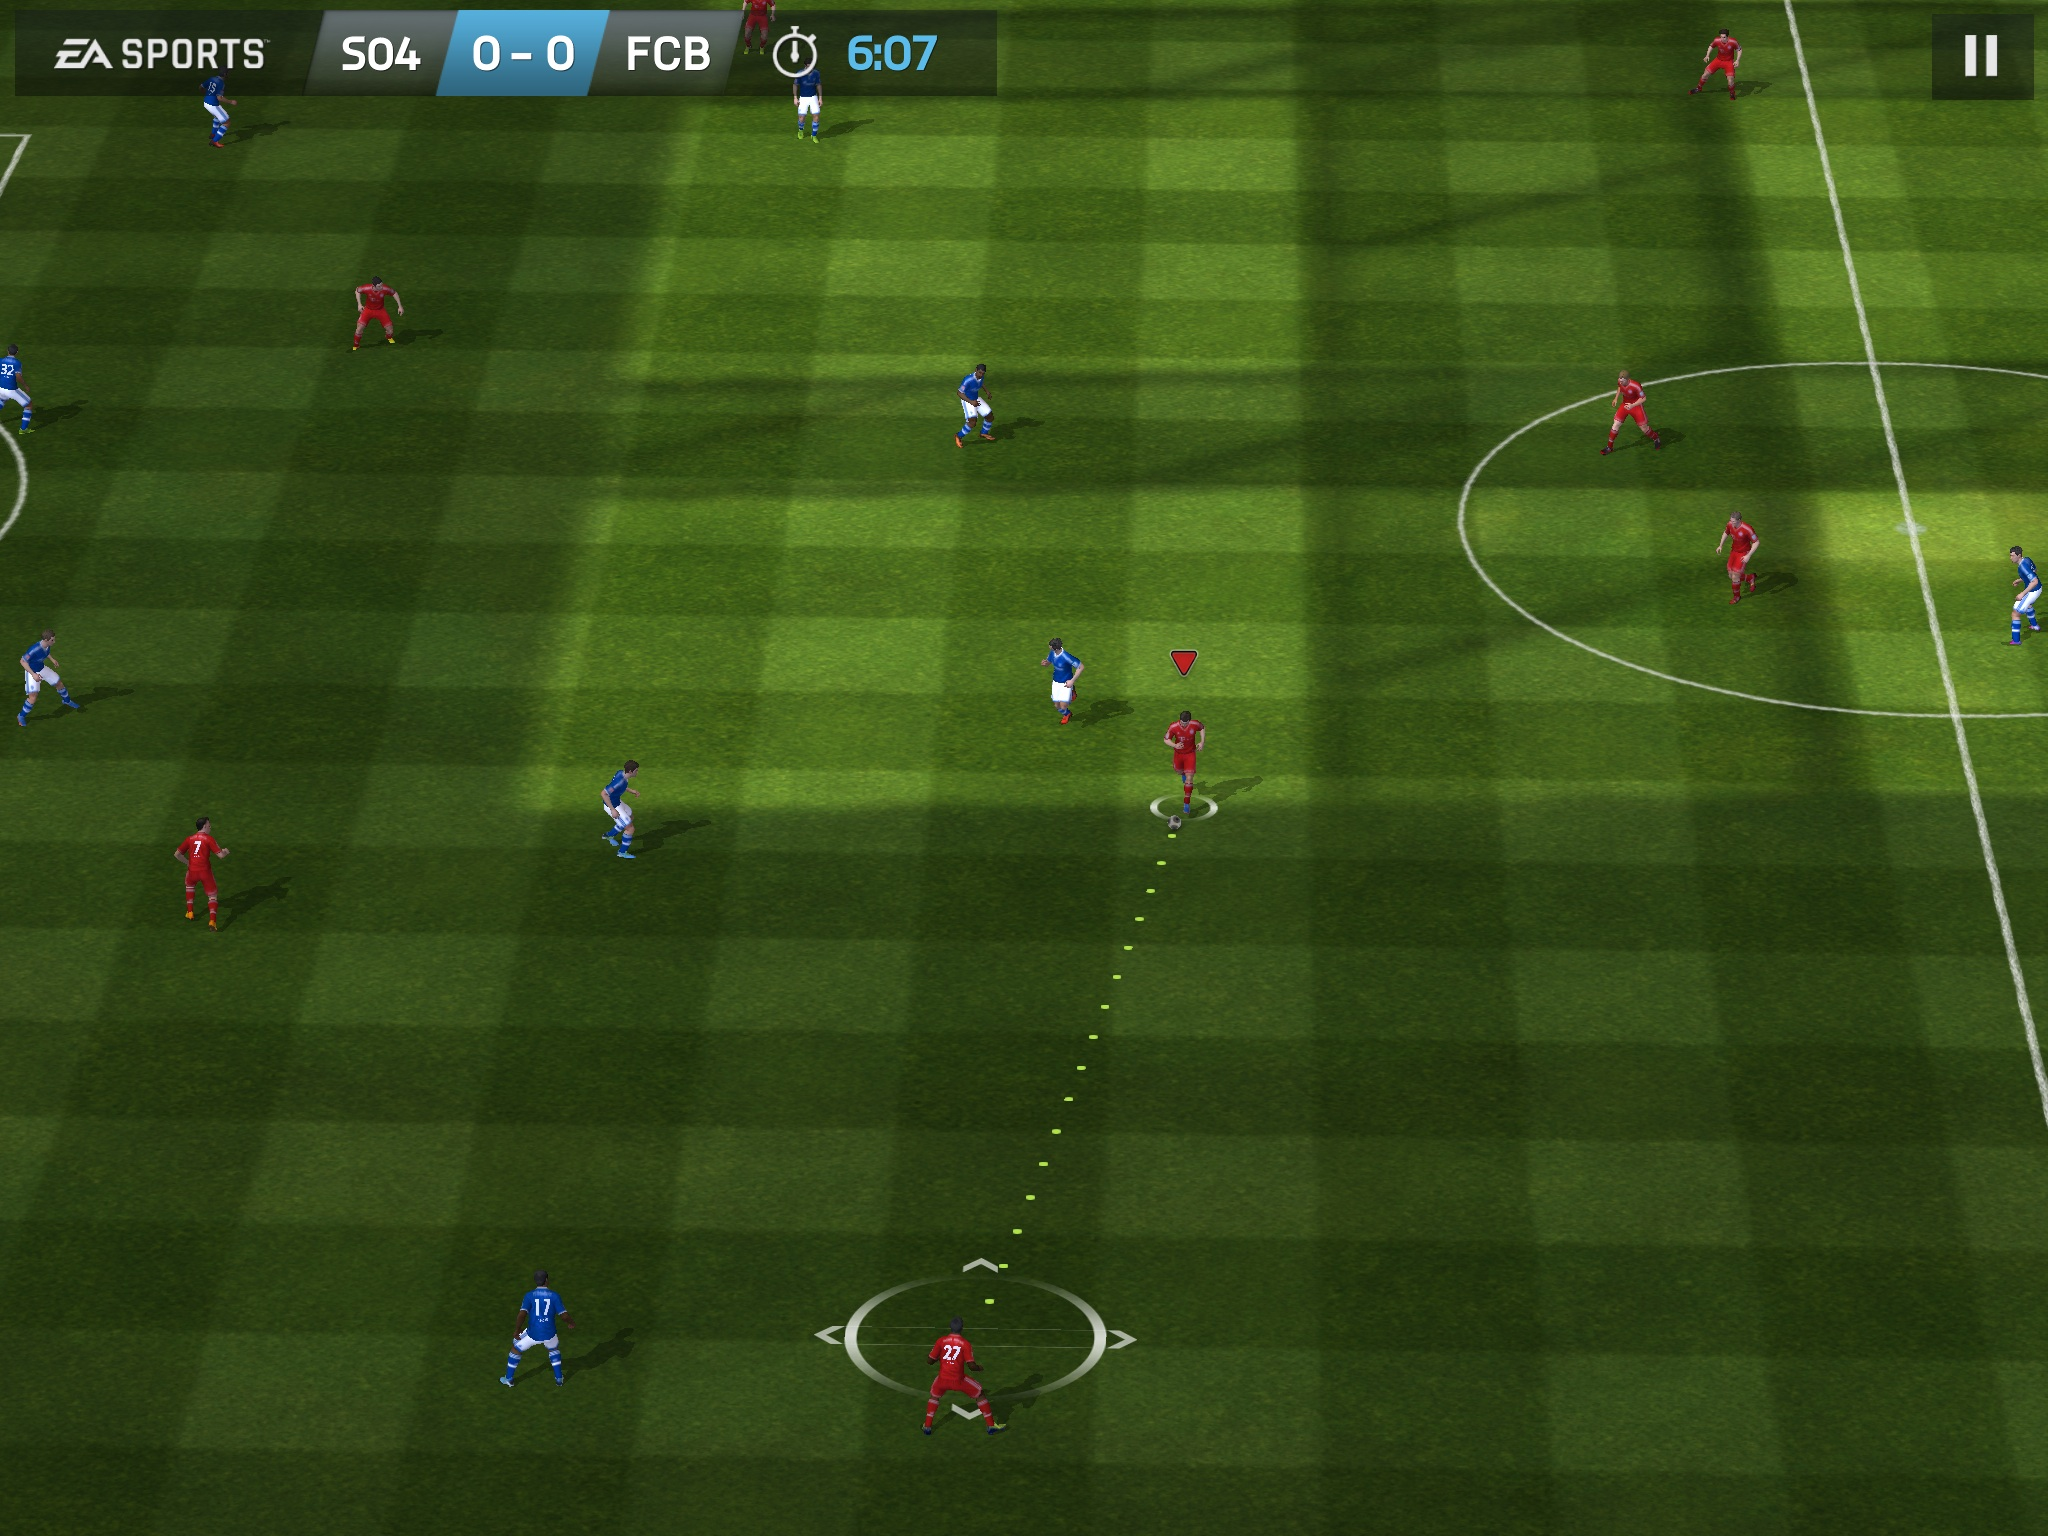 Compete with real-world opponents in FIFA 14's new Ultimate Team Online Seasons mode